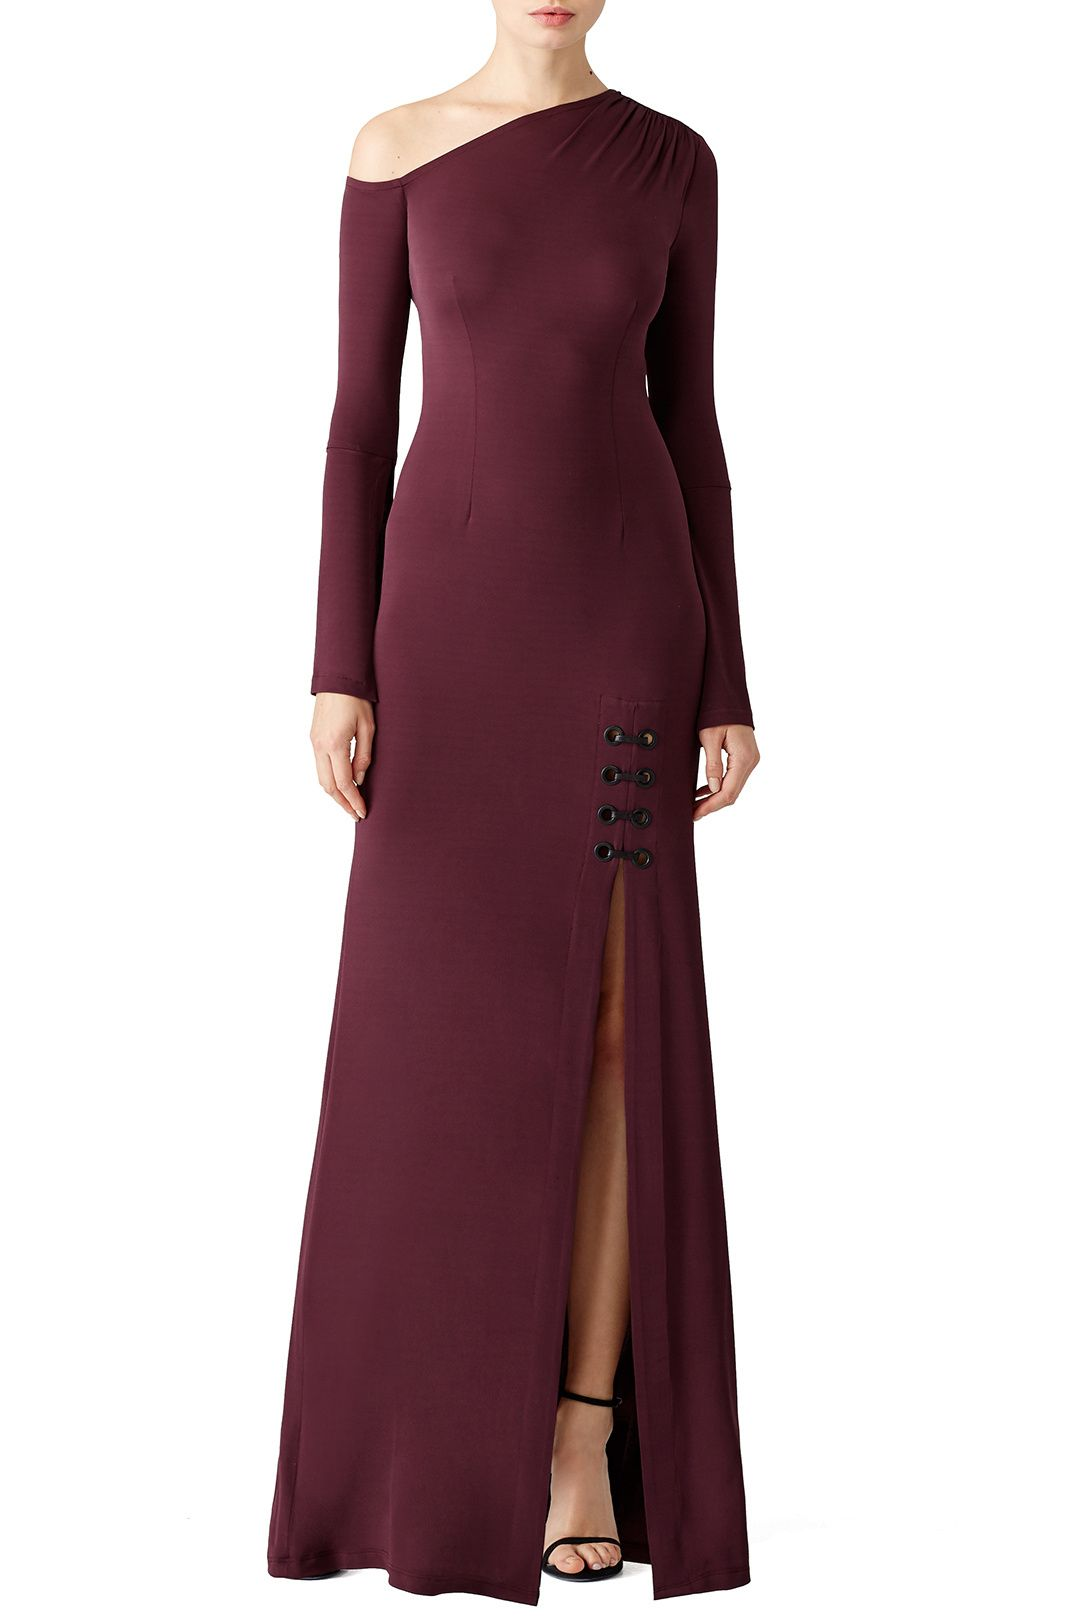 Bordeaux matte asymmetrical gown gowns formal wear and designers